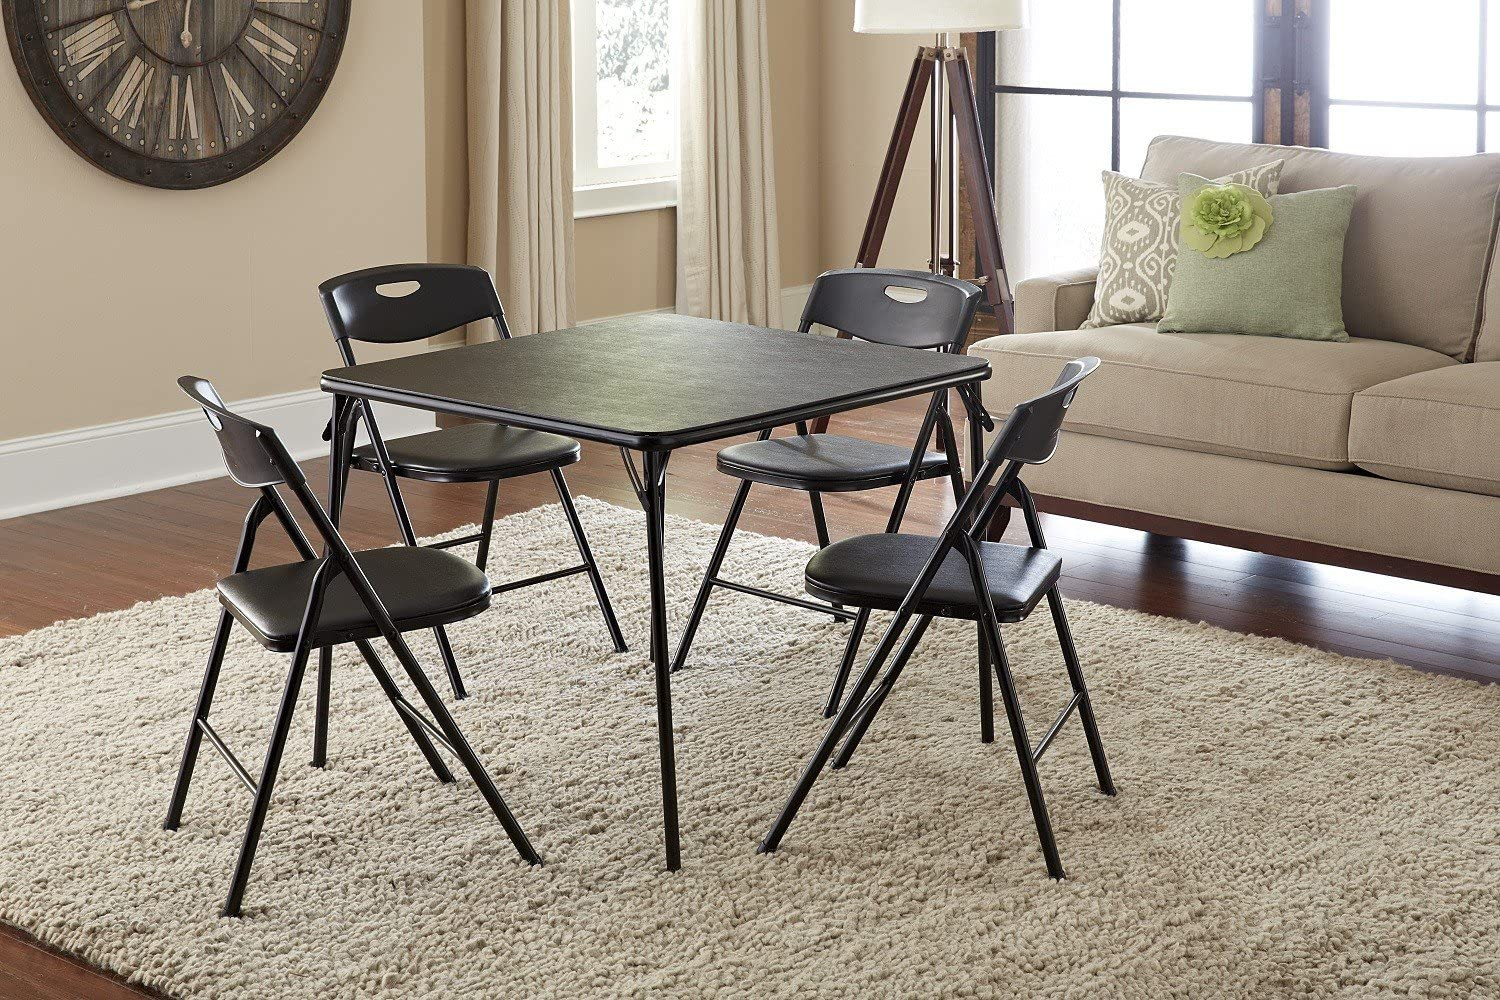 #2. Cosco 5-Piece Table and Chairs, Folding, Black…